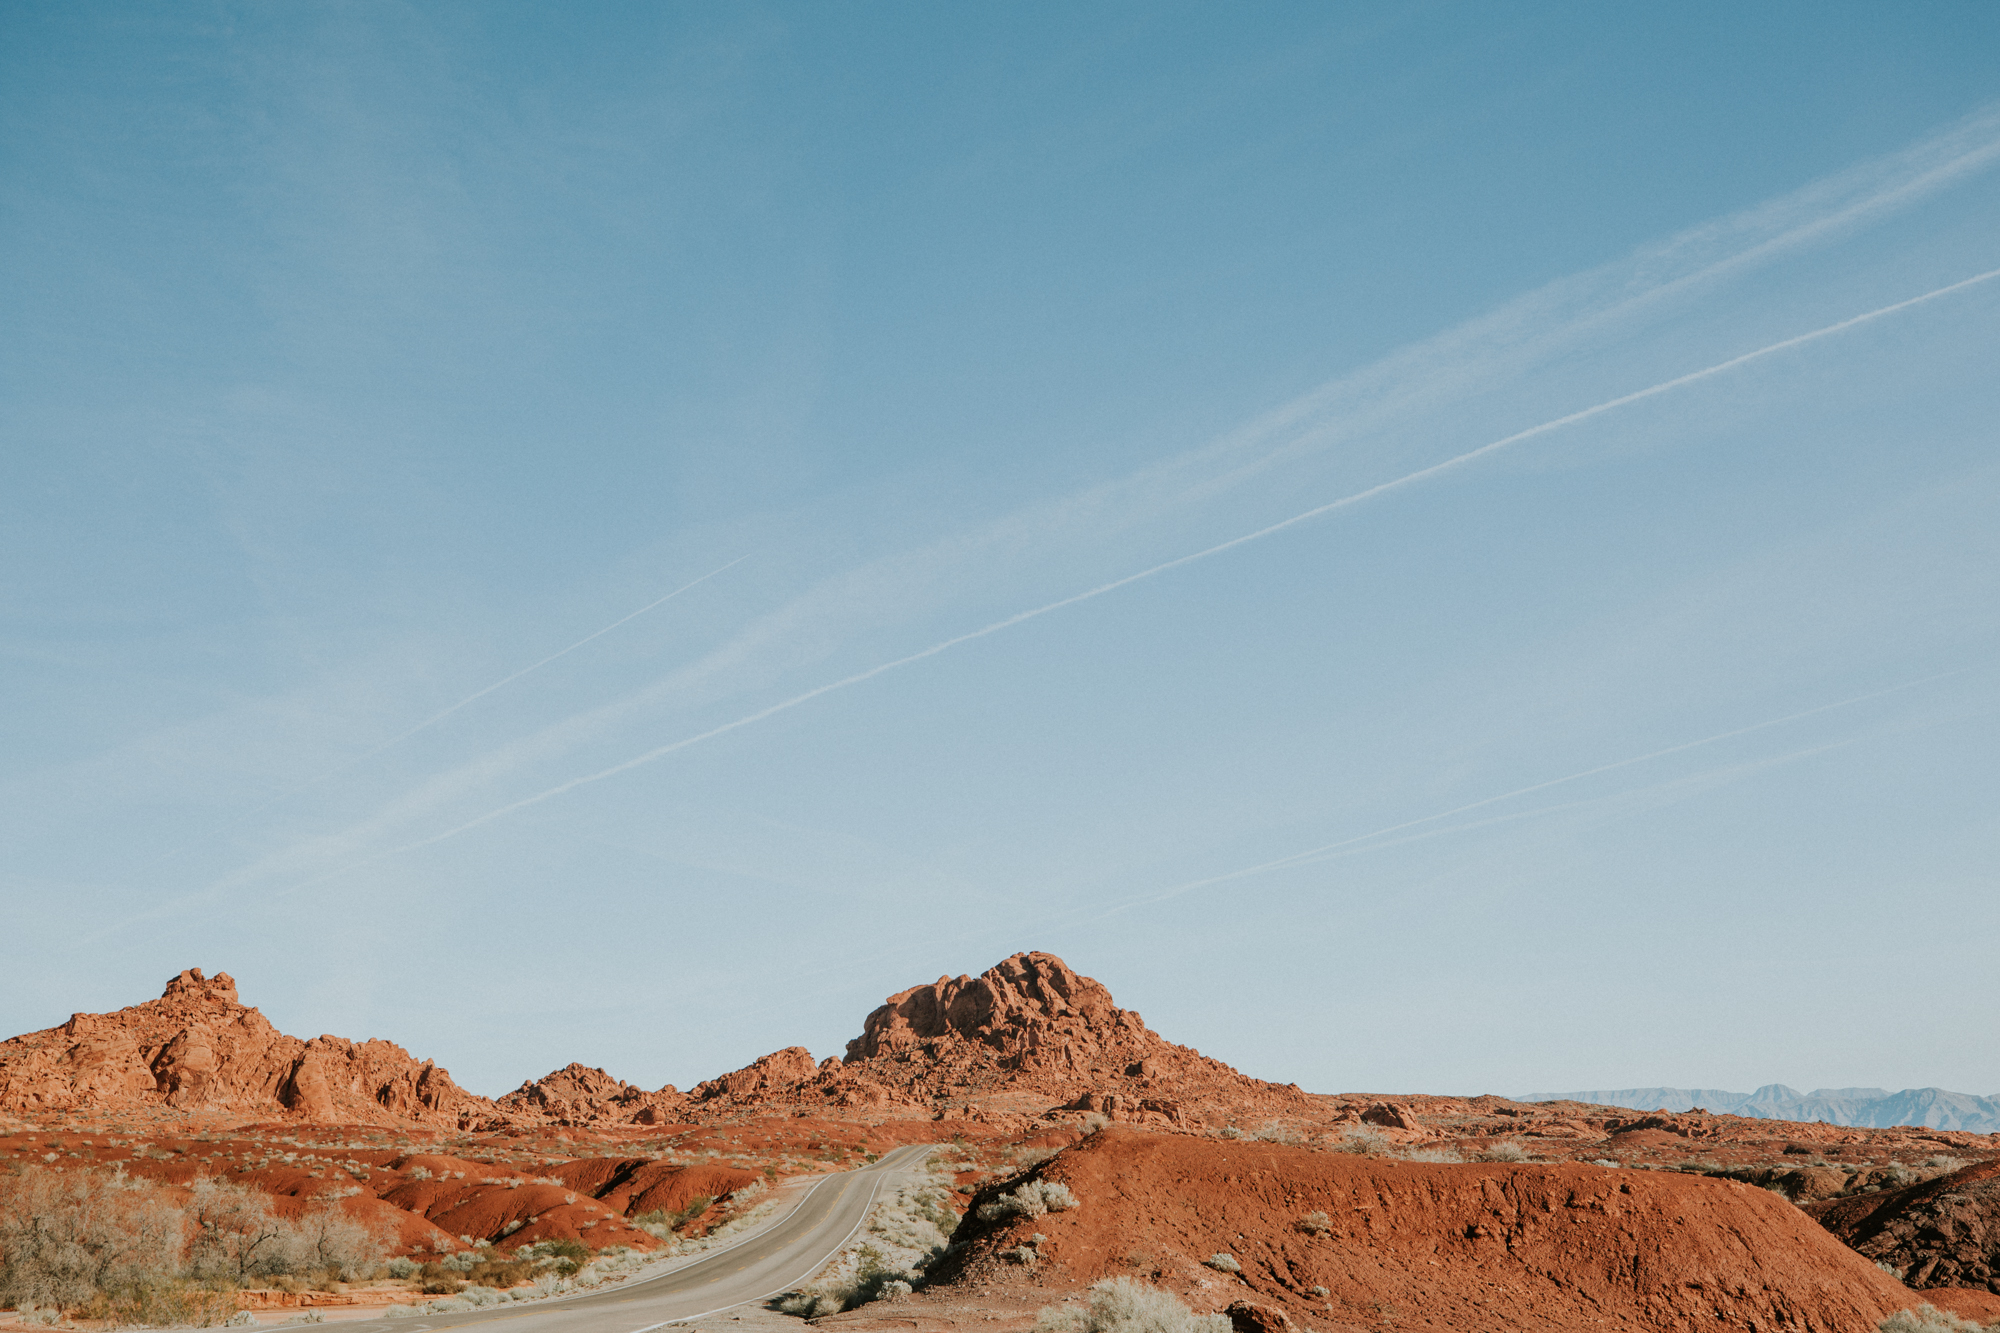 travel southwest road trip adventure desert joshua tree destination photographer elopement natural light photography emily hary photography california